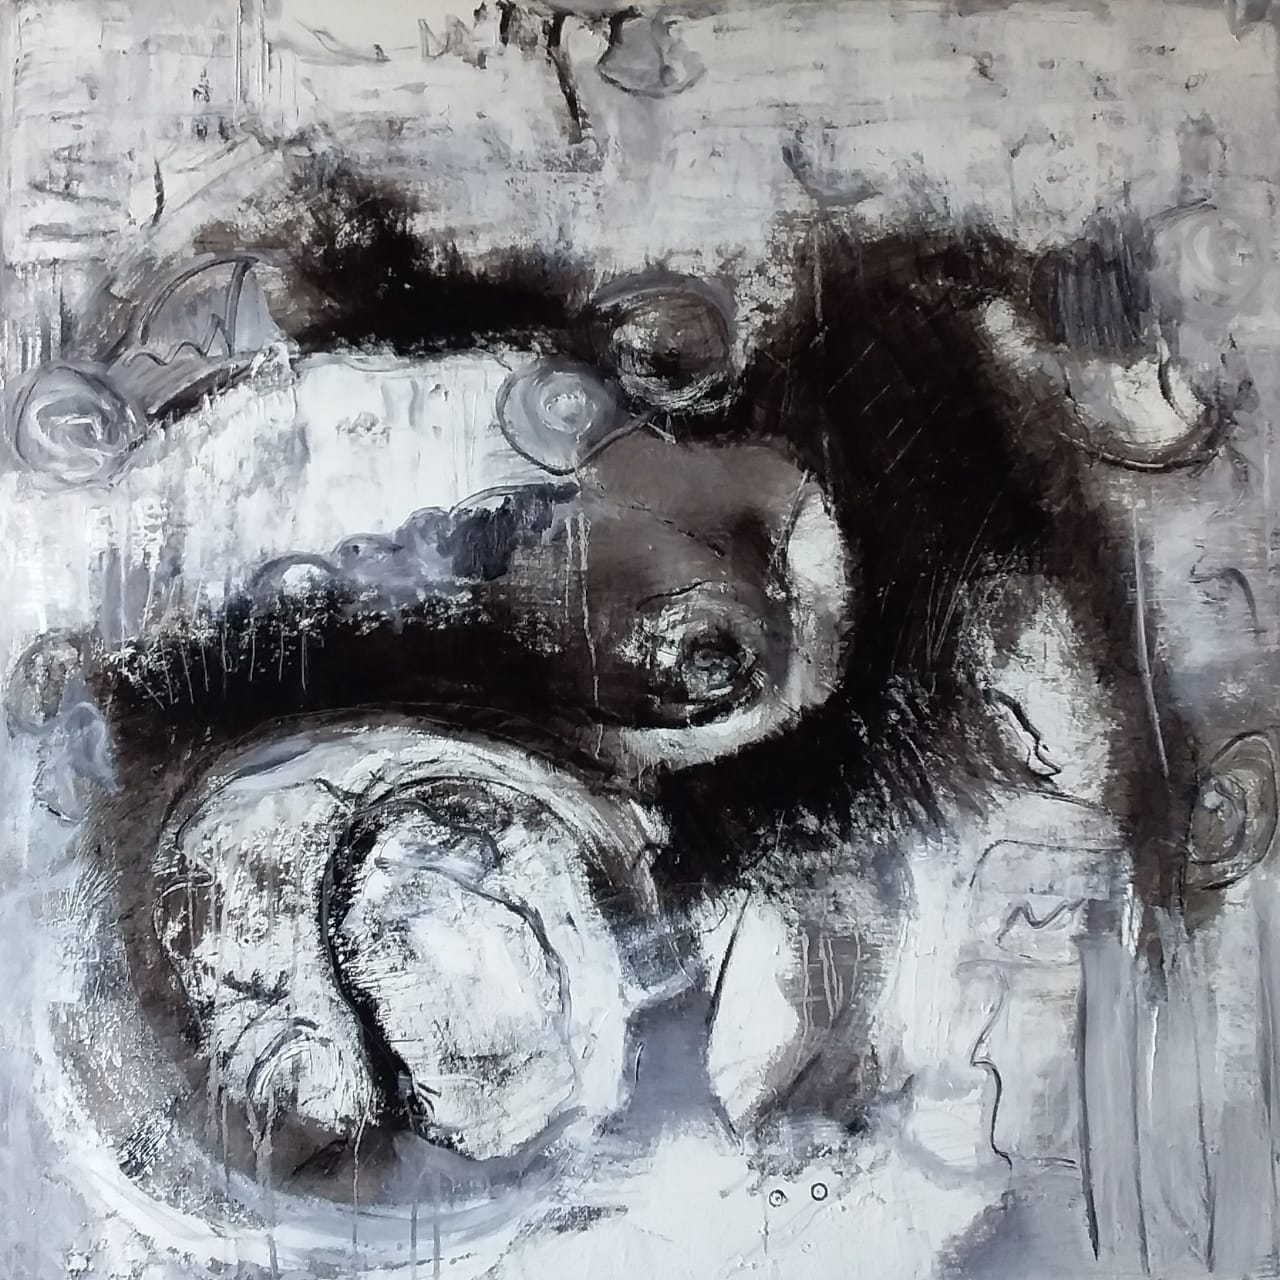 Spirals of de mind and soul, 2019, oil on canvas, 40 x 40 inches, 100 x 100 cm